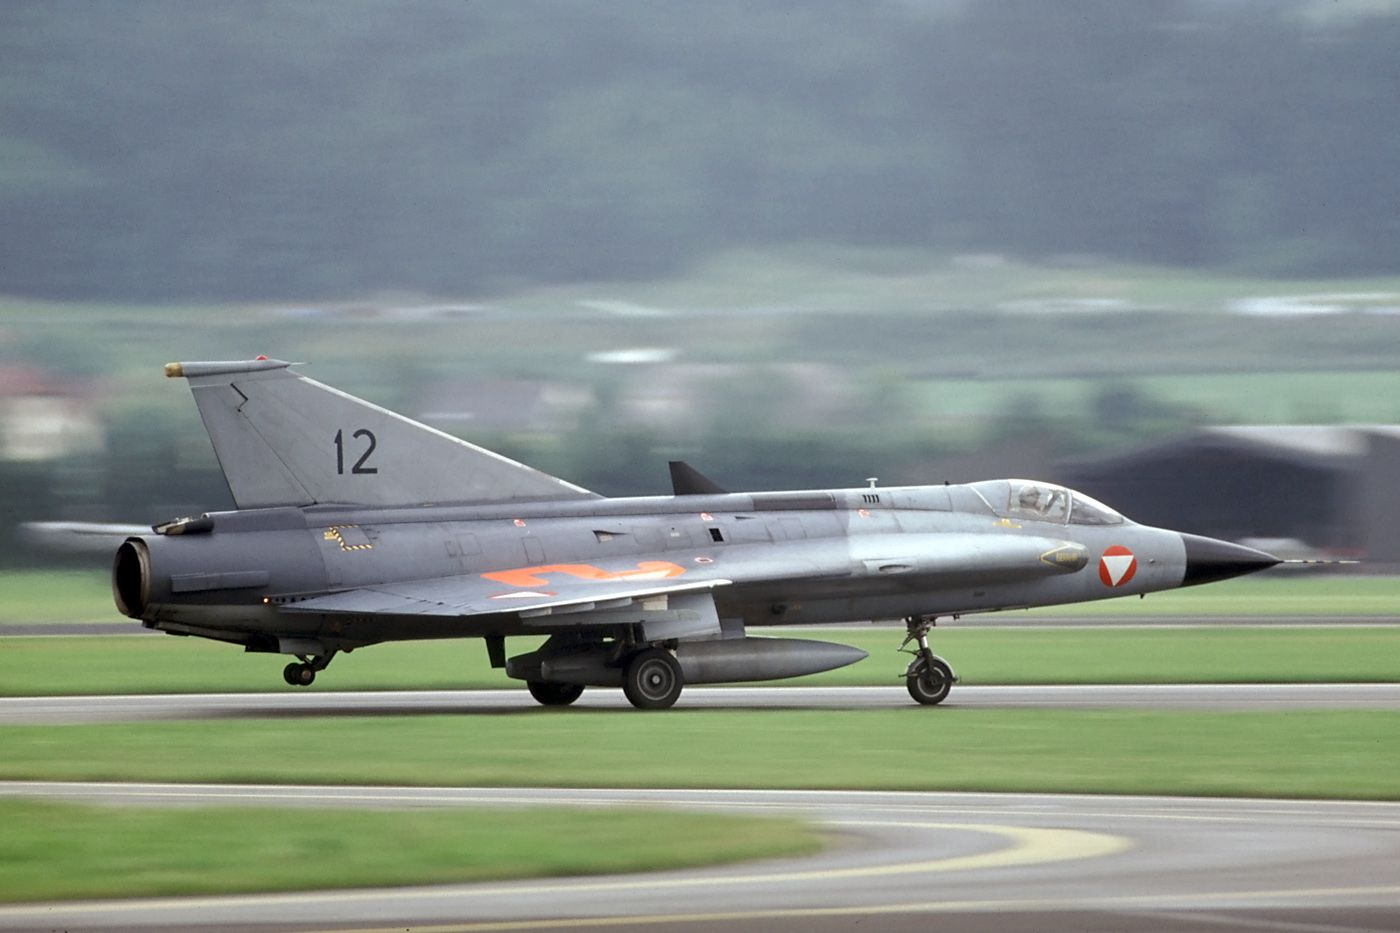 Austria was the last country to keep the Draken in military service. This was the last Austrian Air Force fighter plane with internal cannons for its lone air-to-air armament because of the restriction in the Austrian State Treaty of 1955.